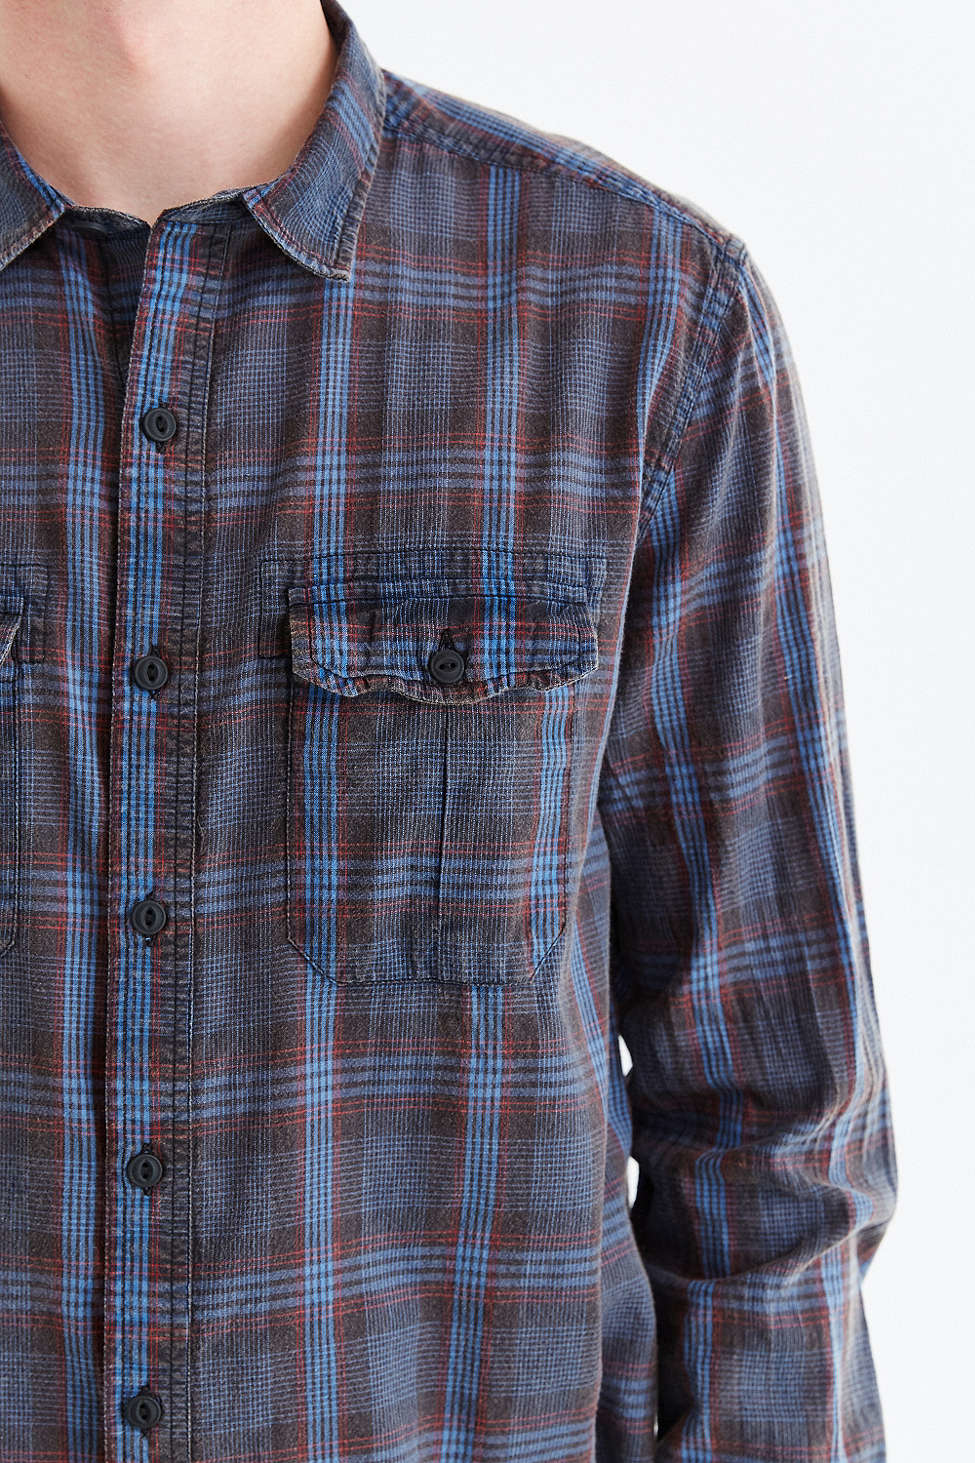 salt valley acid washed plaid button down workshirt in